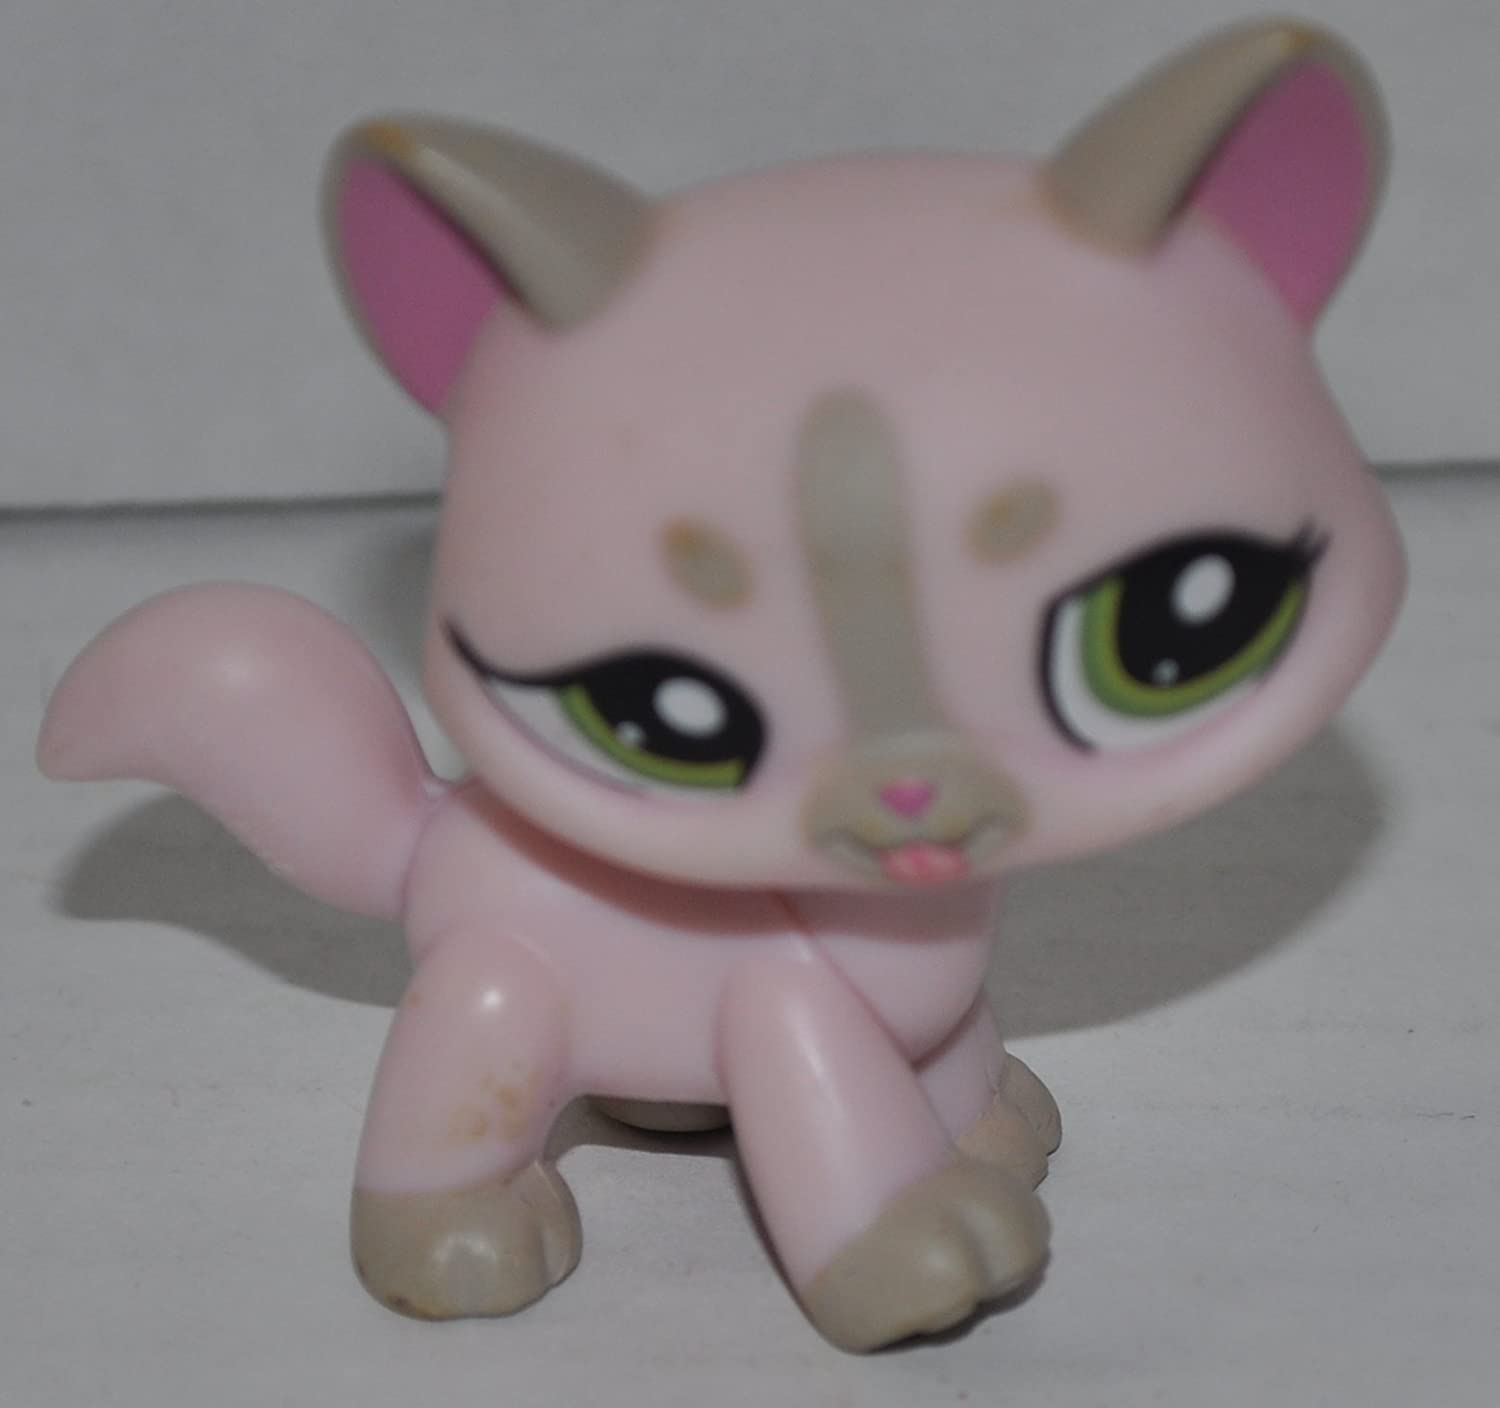 LPS Collectible Replacement Single Figure Retired OOP Out of Package /& Print - Littlest Pet Shop Loose Collector Toy Shorthair Kitten #1326 Puff Tail: Pink, Green Eyes